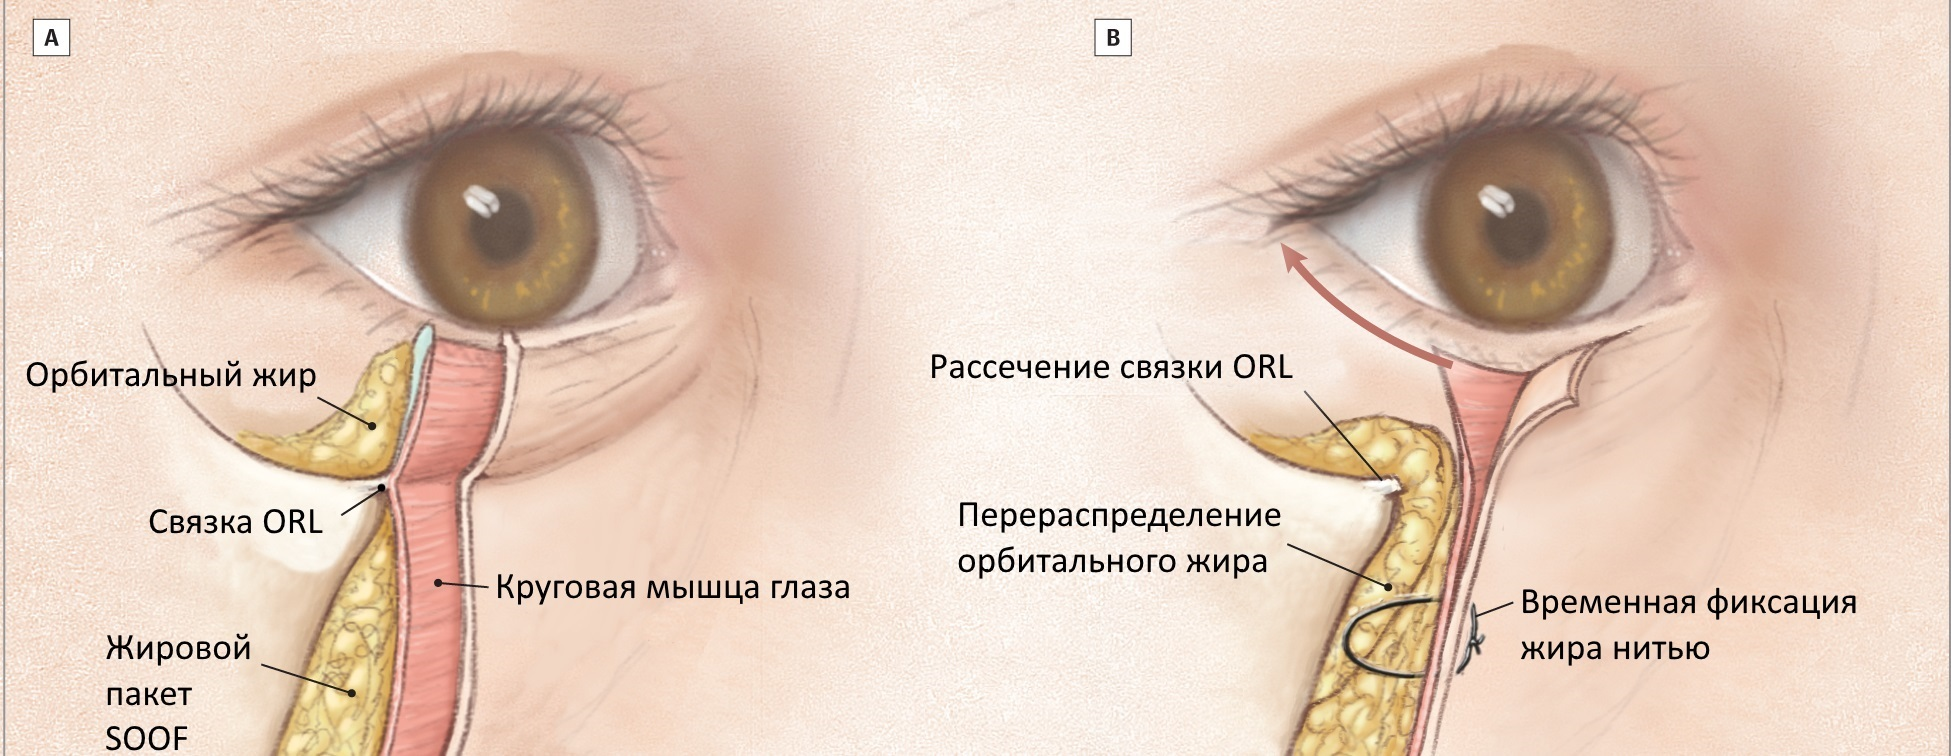 Lower Blepharoplasty Anatomy